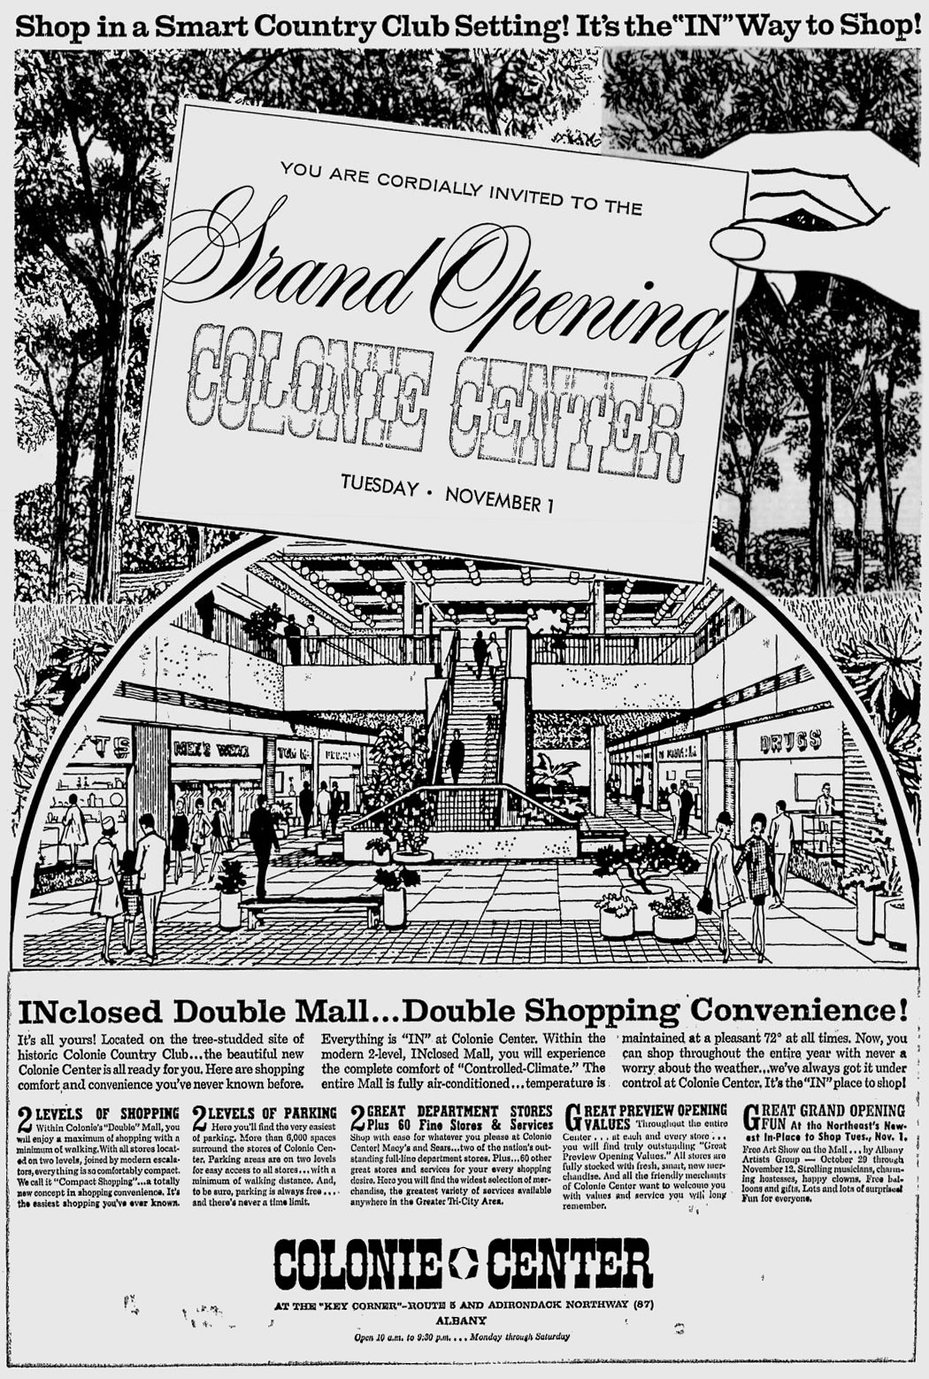 Colonie Center grand opening ad 1966 Schenectady Gazette